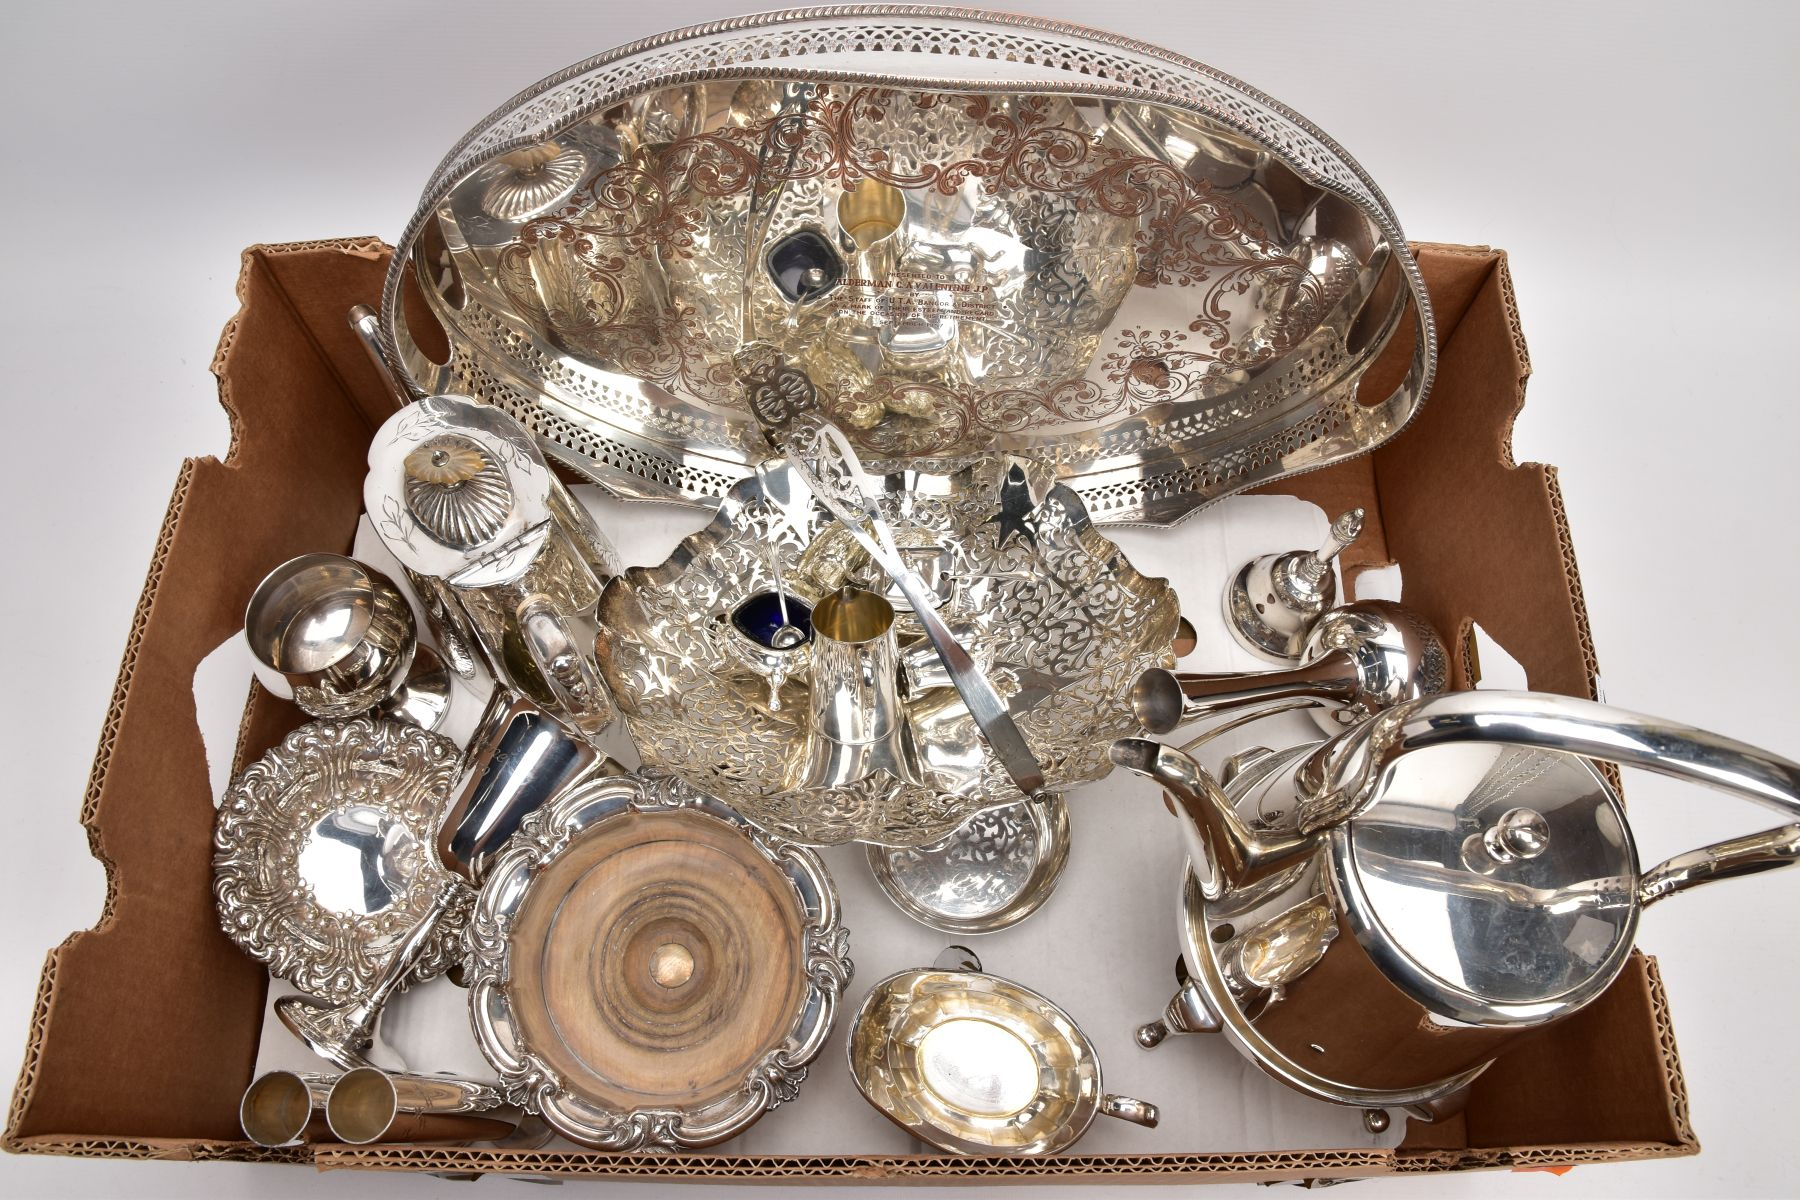 A BOX CONTAINING A QUANTITY OF SILVER PLATED ITEMS, to include a teapot and coffeepot with stand,